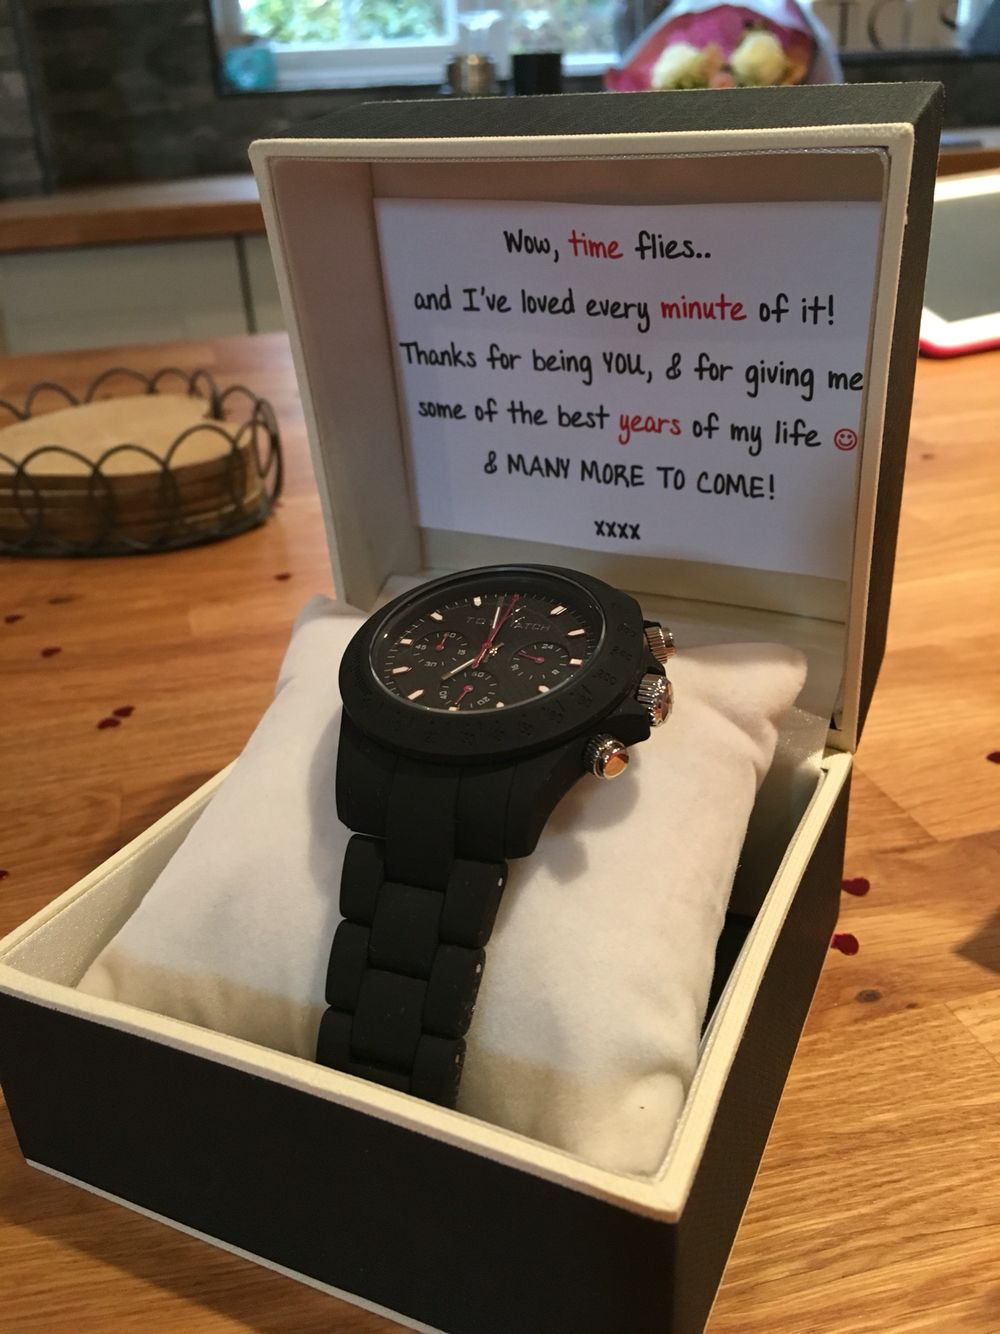 a141b5f7cbfa 3 year anniversary gift for my boyfriend of 3 years. Watch and card ...